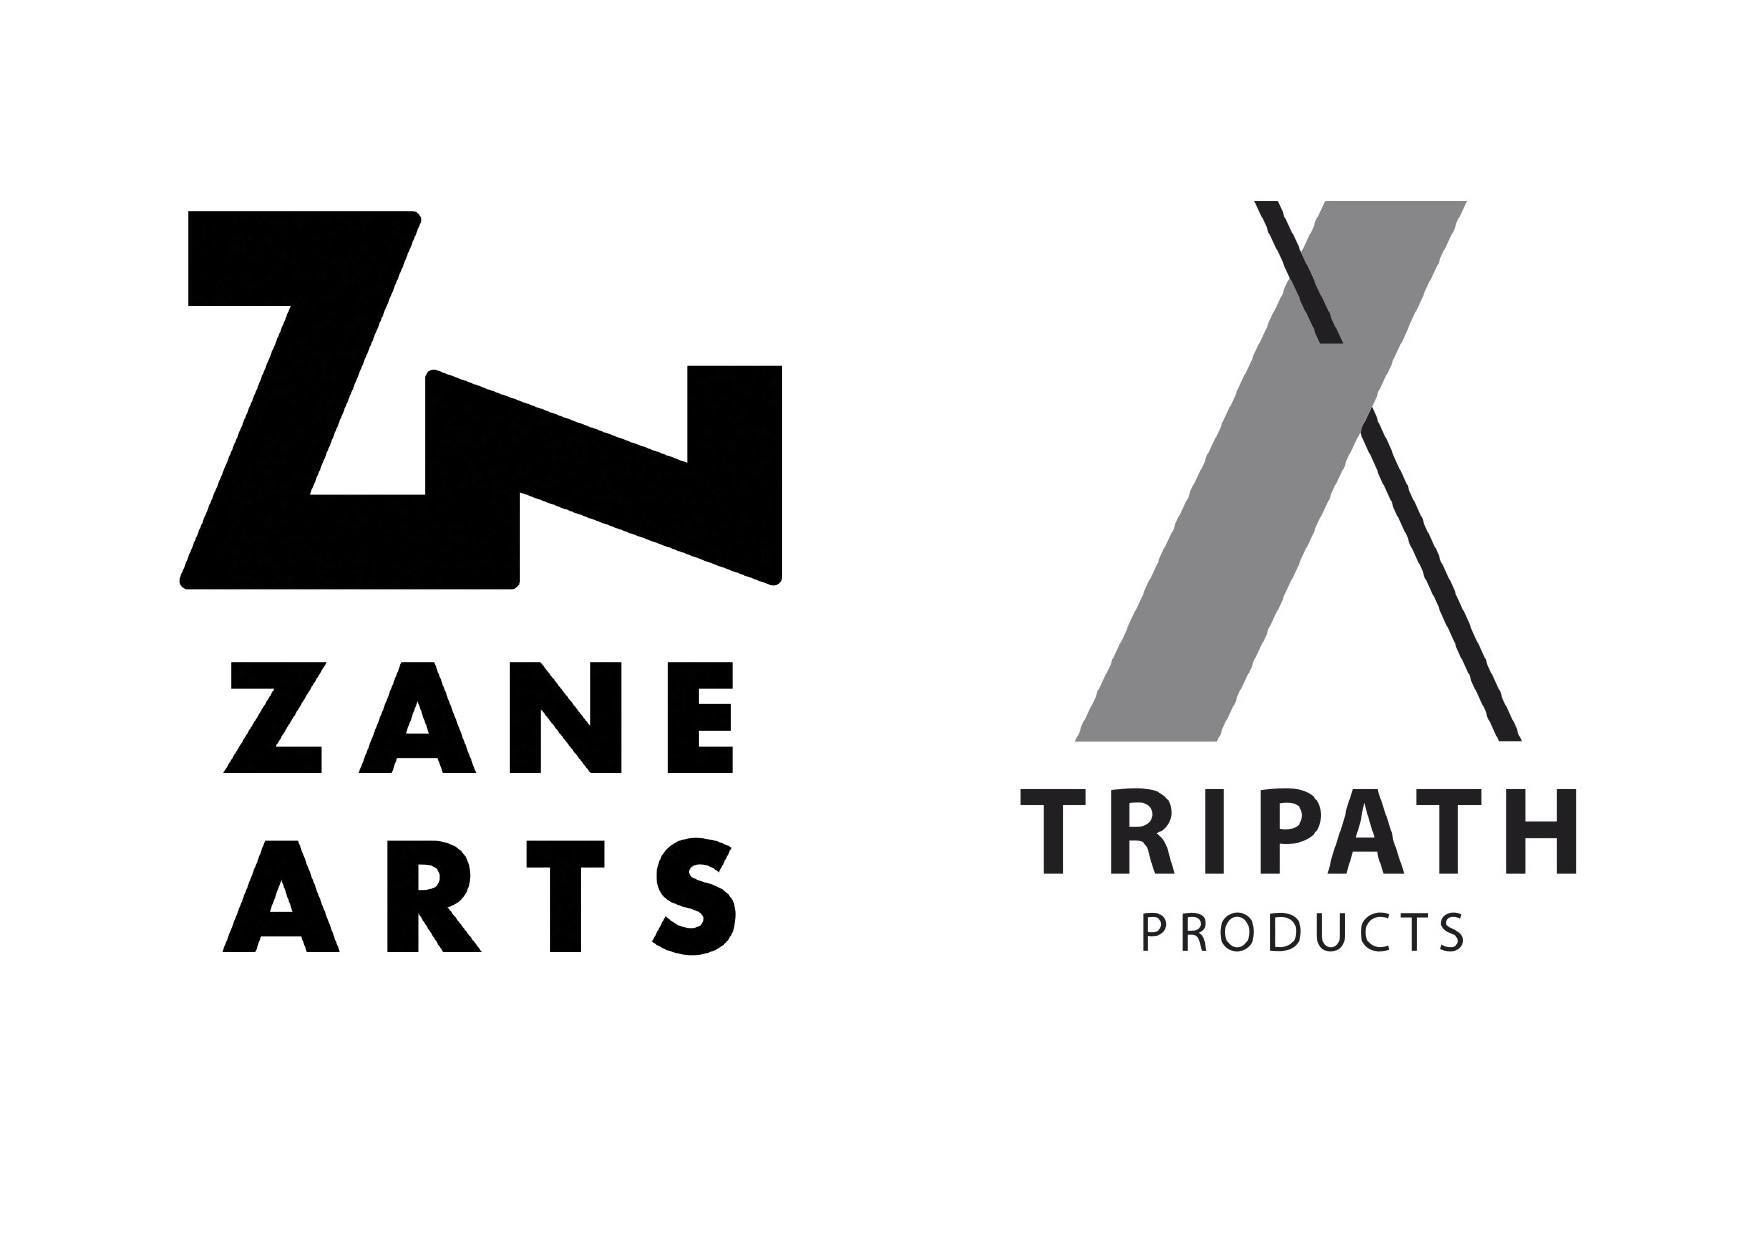 7/18, 19 ZANE ARTS & TRIPATH PRODUCTS POPUP SHOP